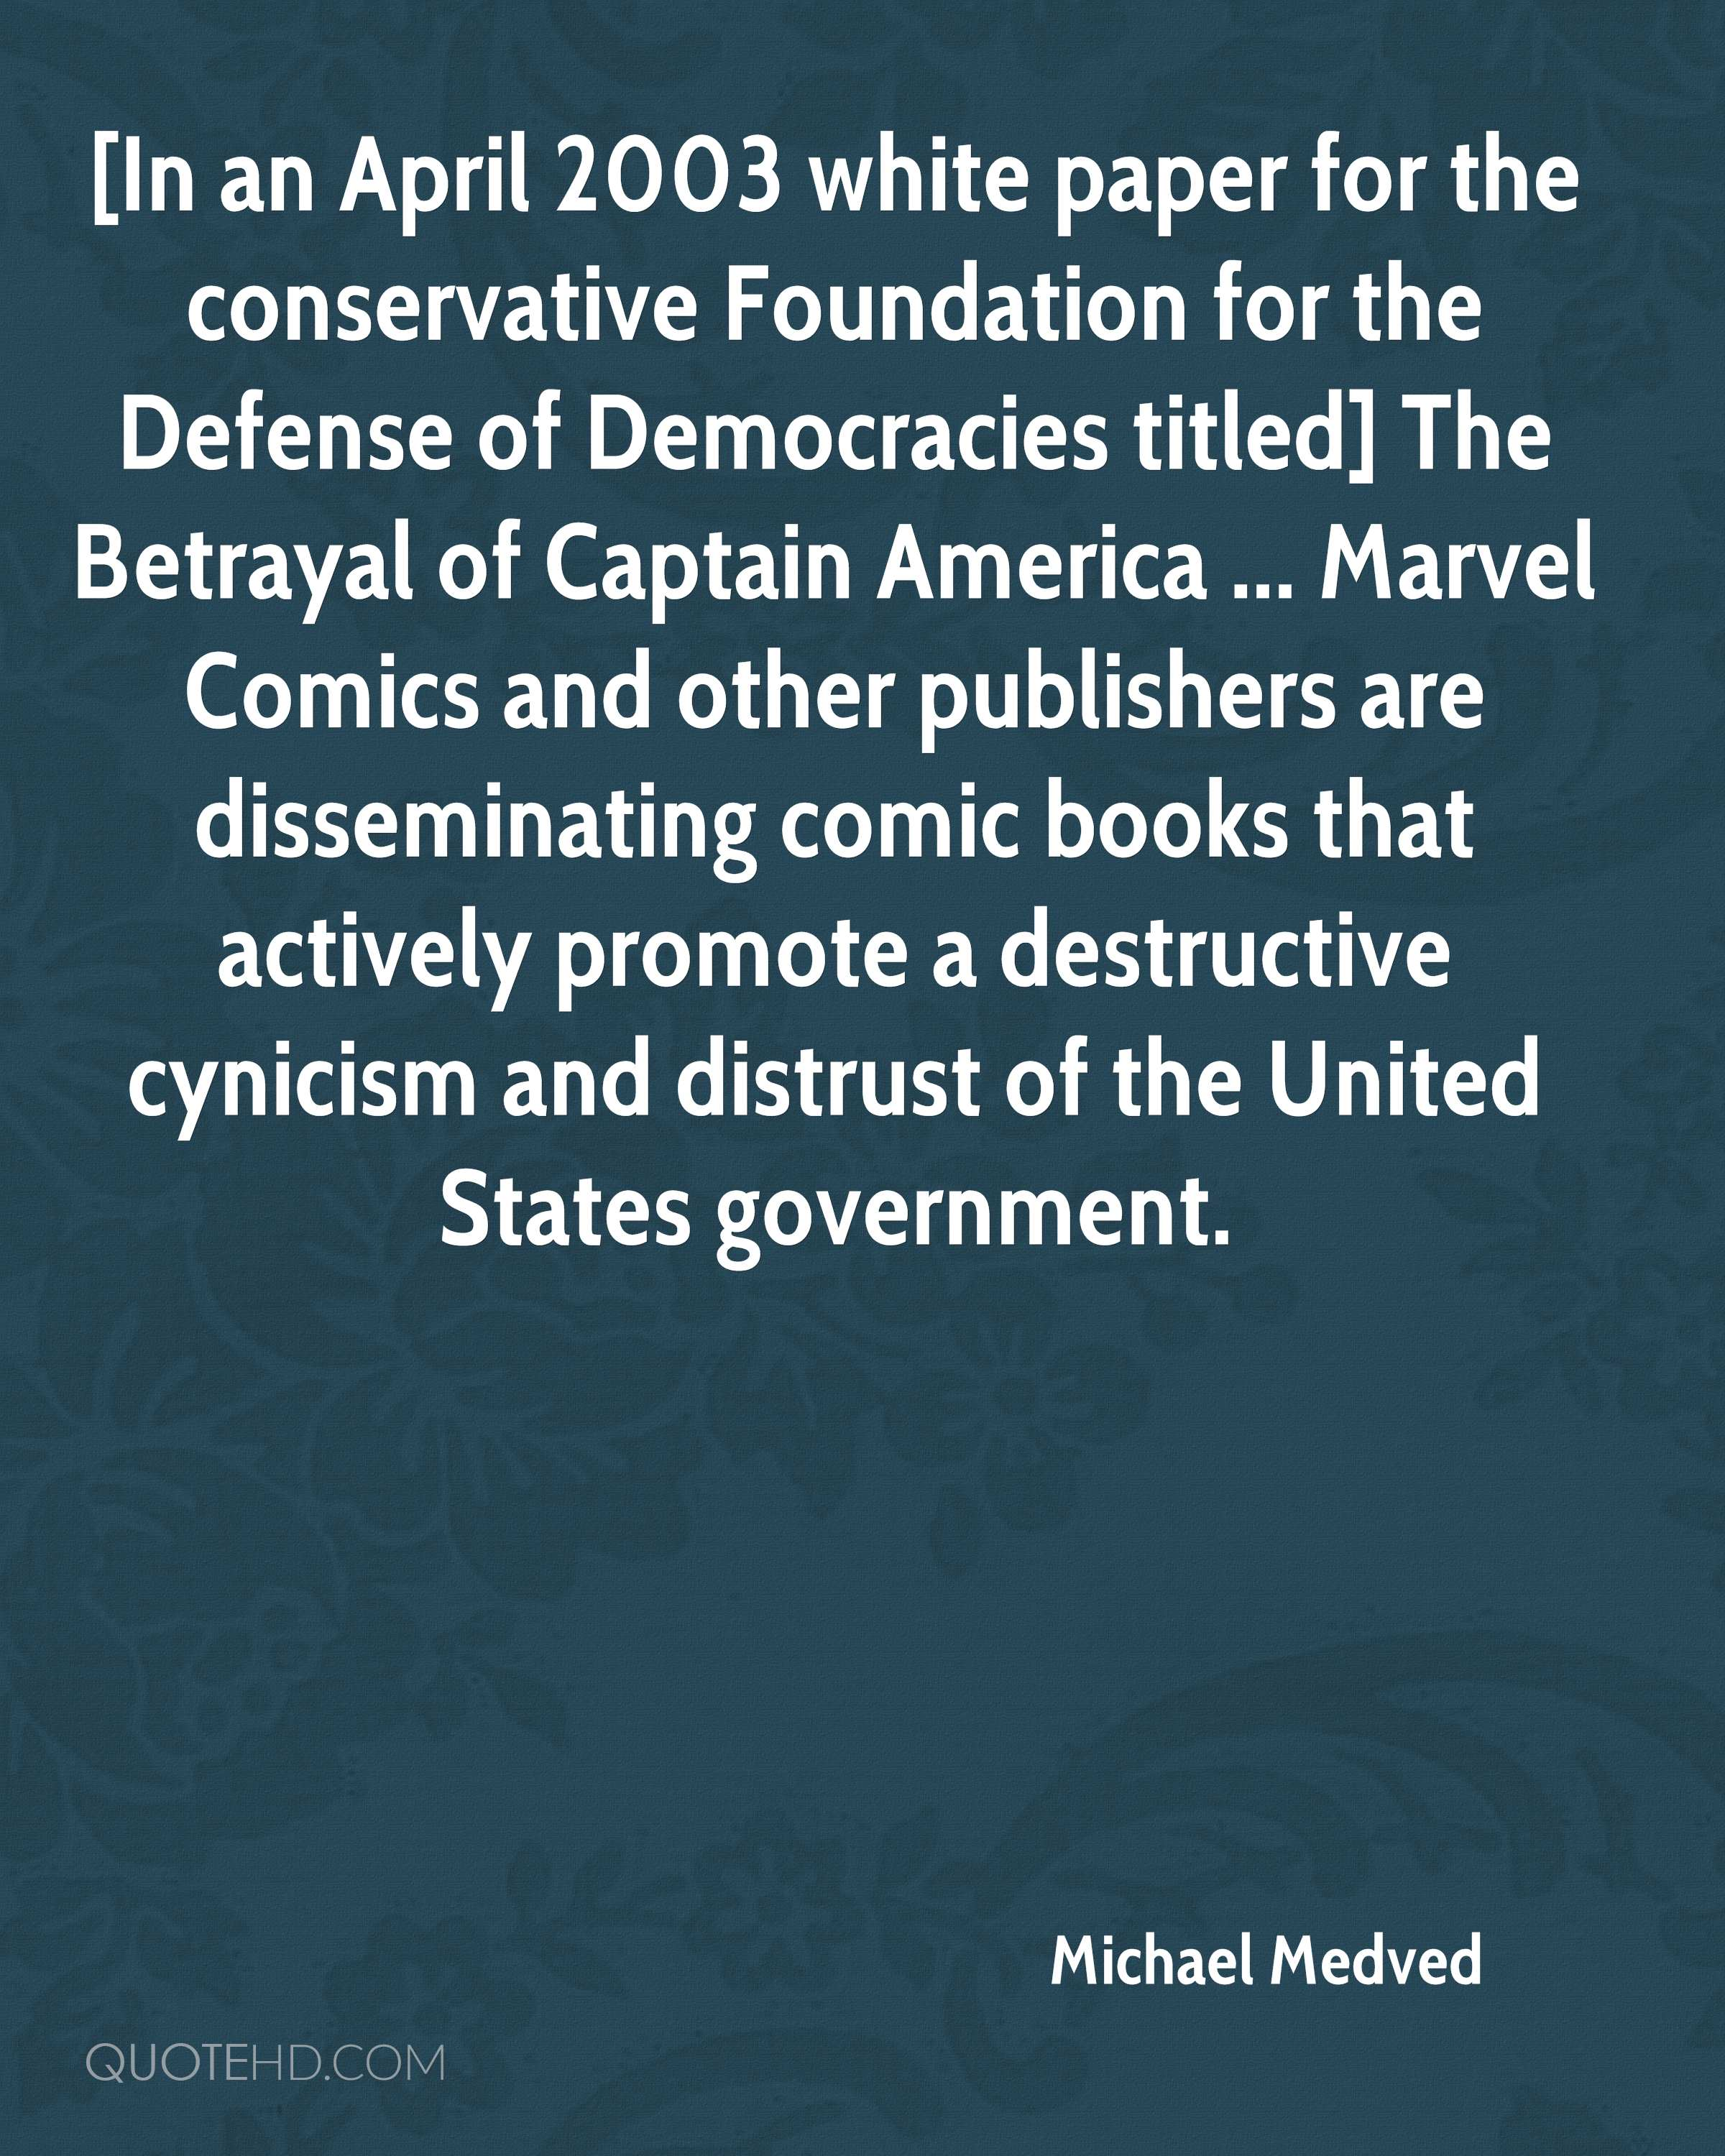 [In an April 2003 white paper for the conservative Foundation for the Defense of Democracies titled] The Betrayal of Captain America ... Marvel Comics and other publishers are disseminating comic books that actively promote a destructive cynicism and distrust of the United States government.